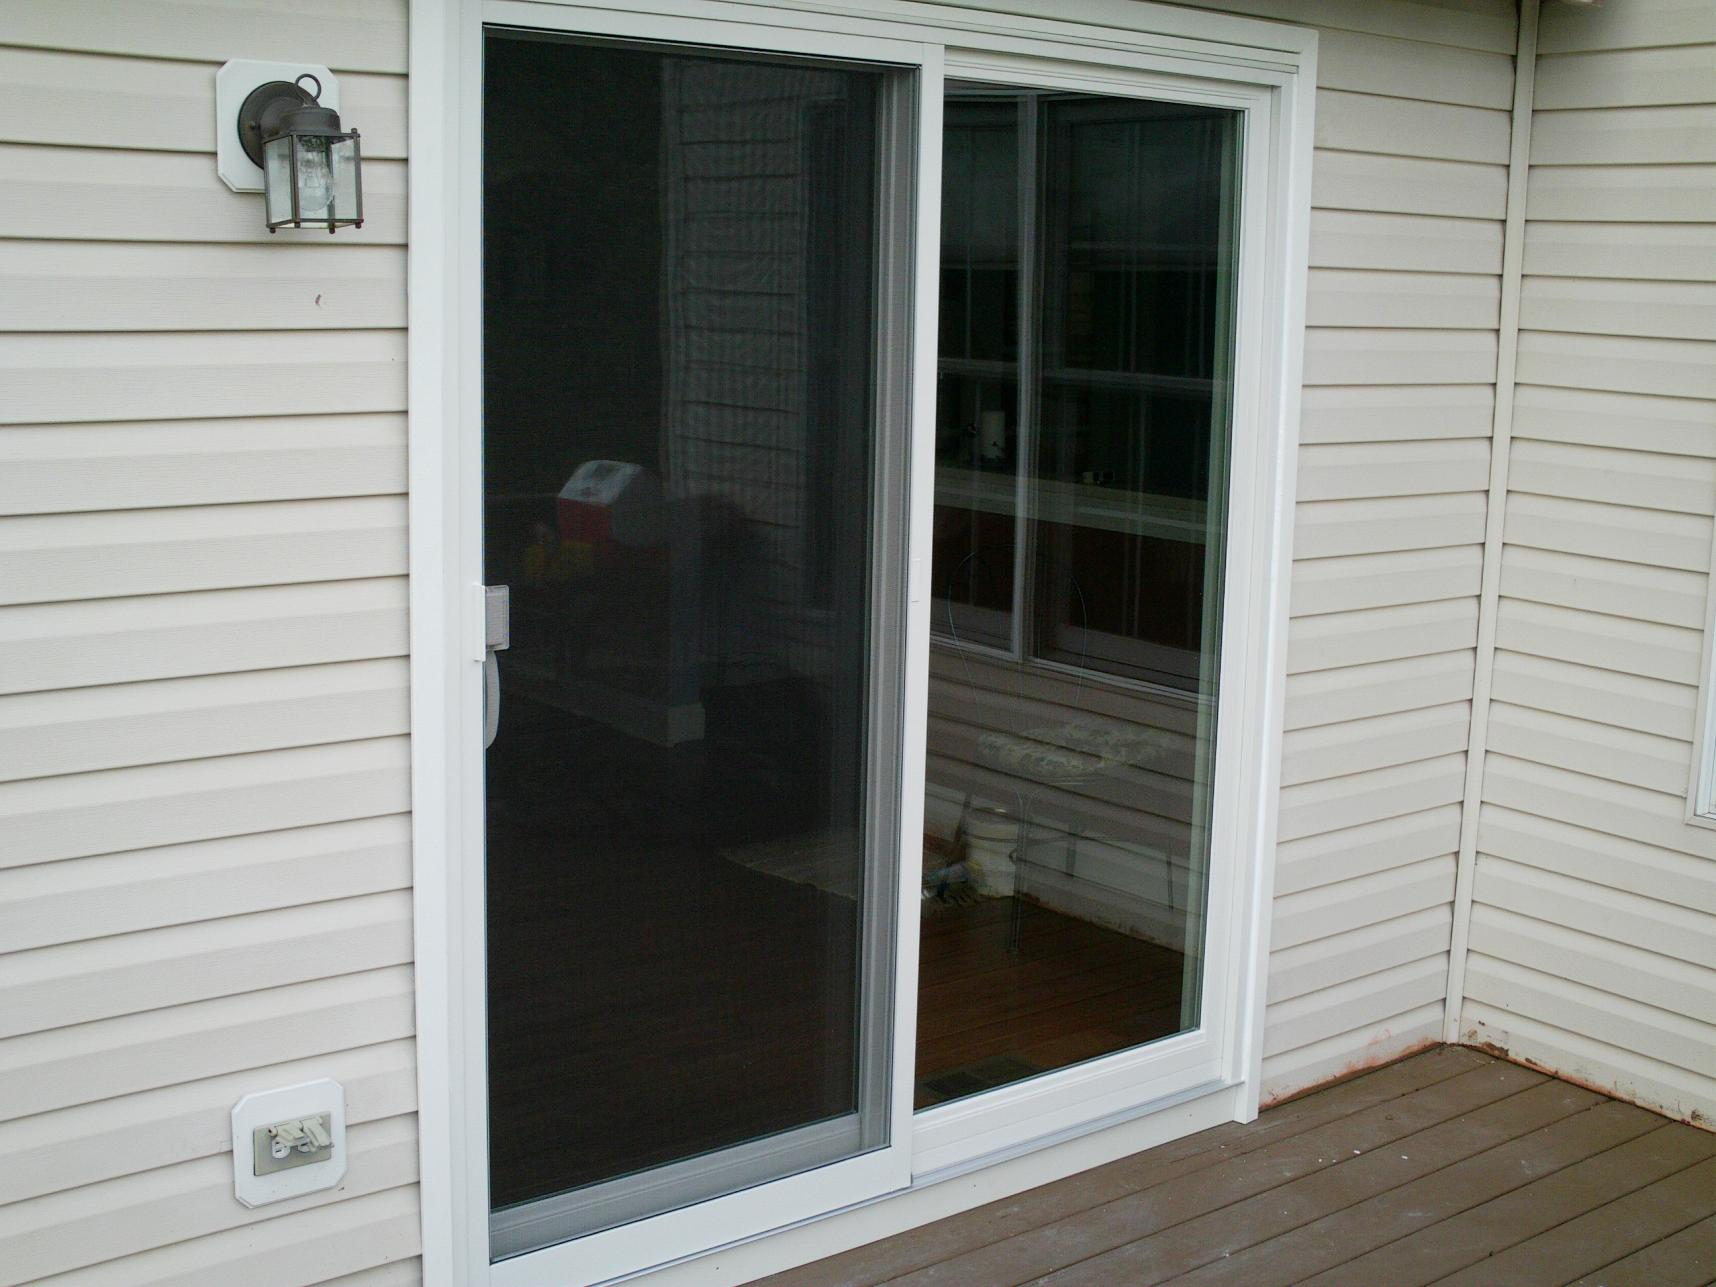 1287 #5C503C Anderson Patio Door Page 2 Windows Siding And Doors Contractor  picture/photo Andersondoors 46091716